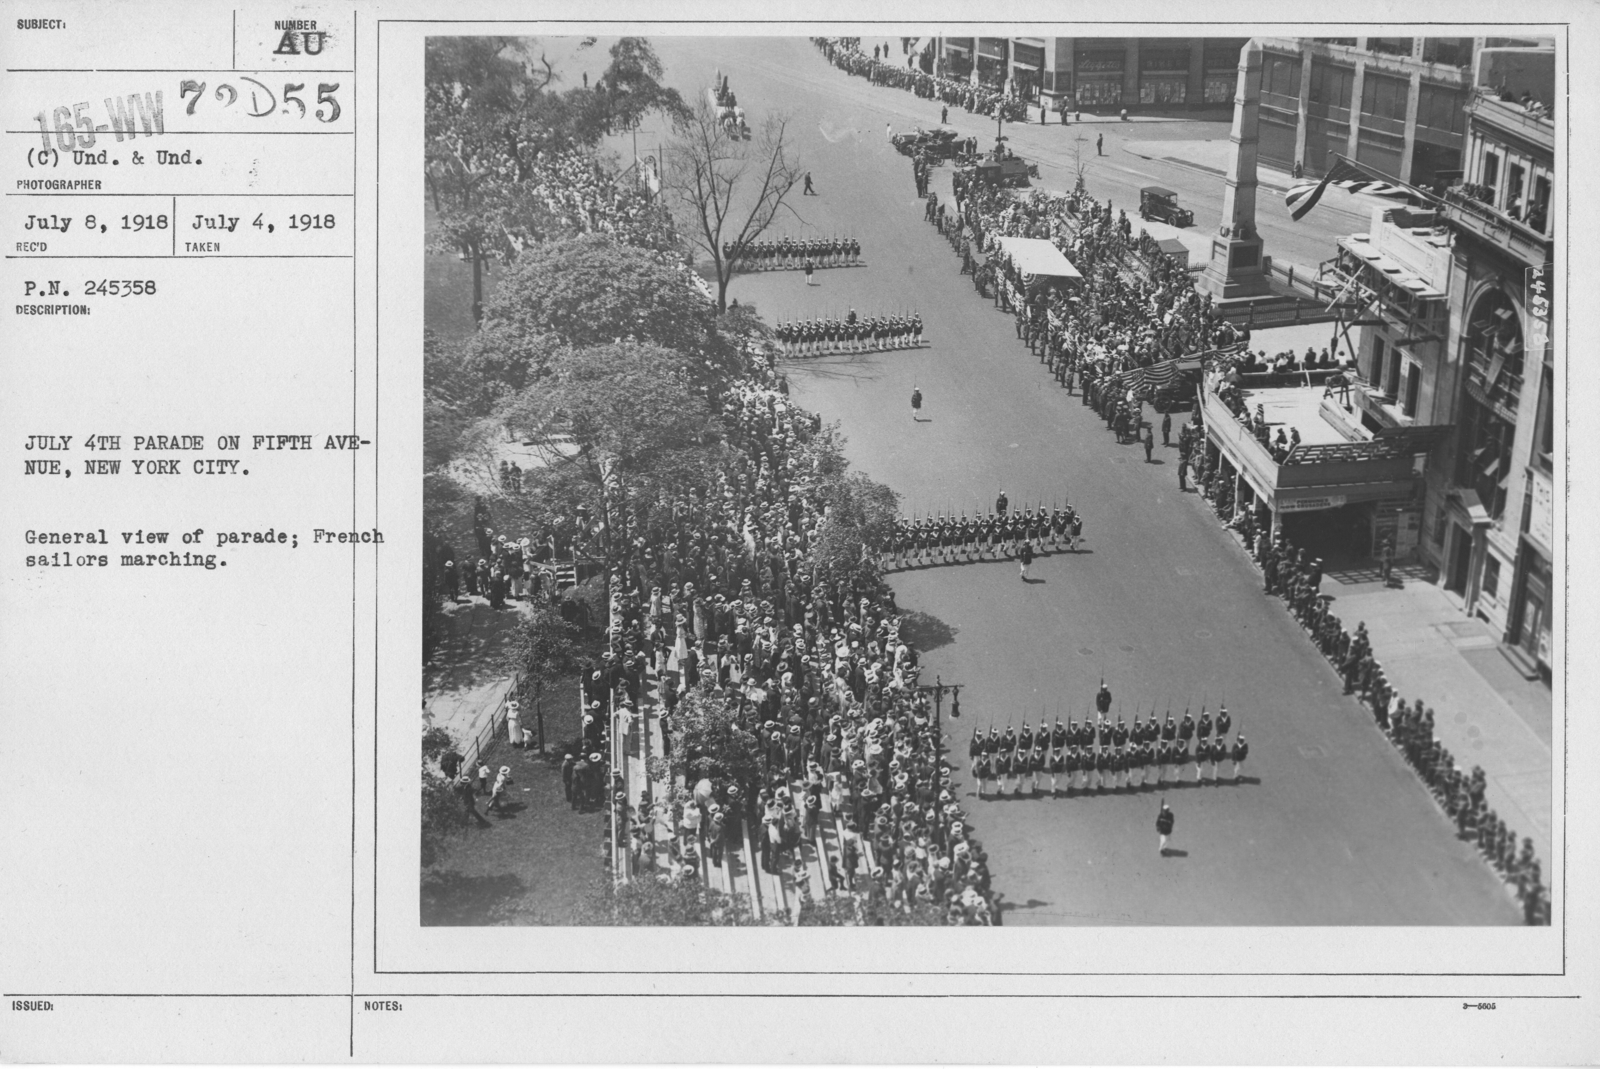 Ceremonies - Independence Day, 1918 - July 4th Parade on Fifth Avenue, New York City. General view of parade; French sailors marching